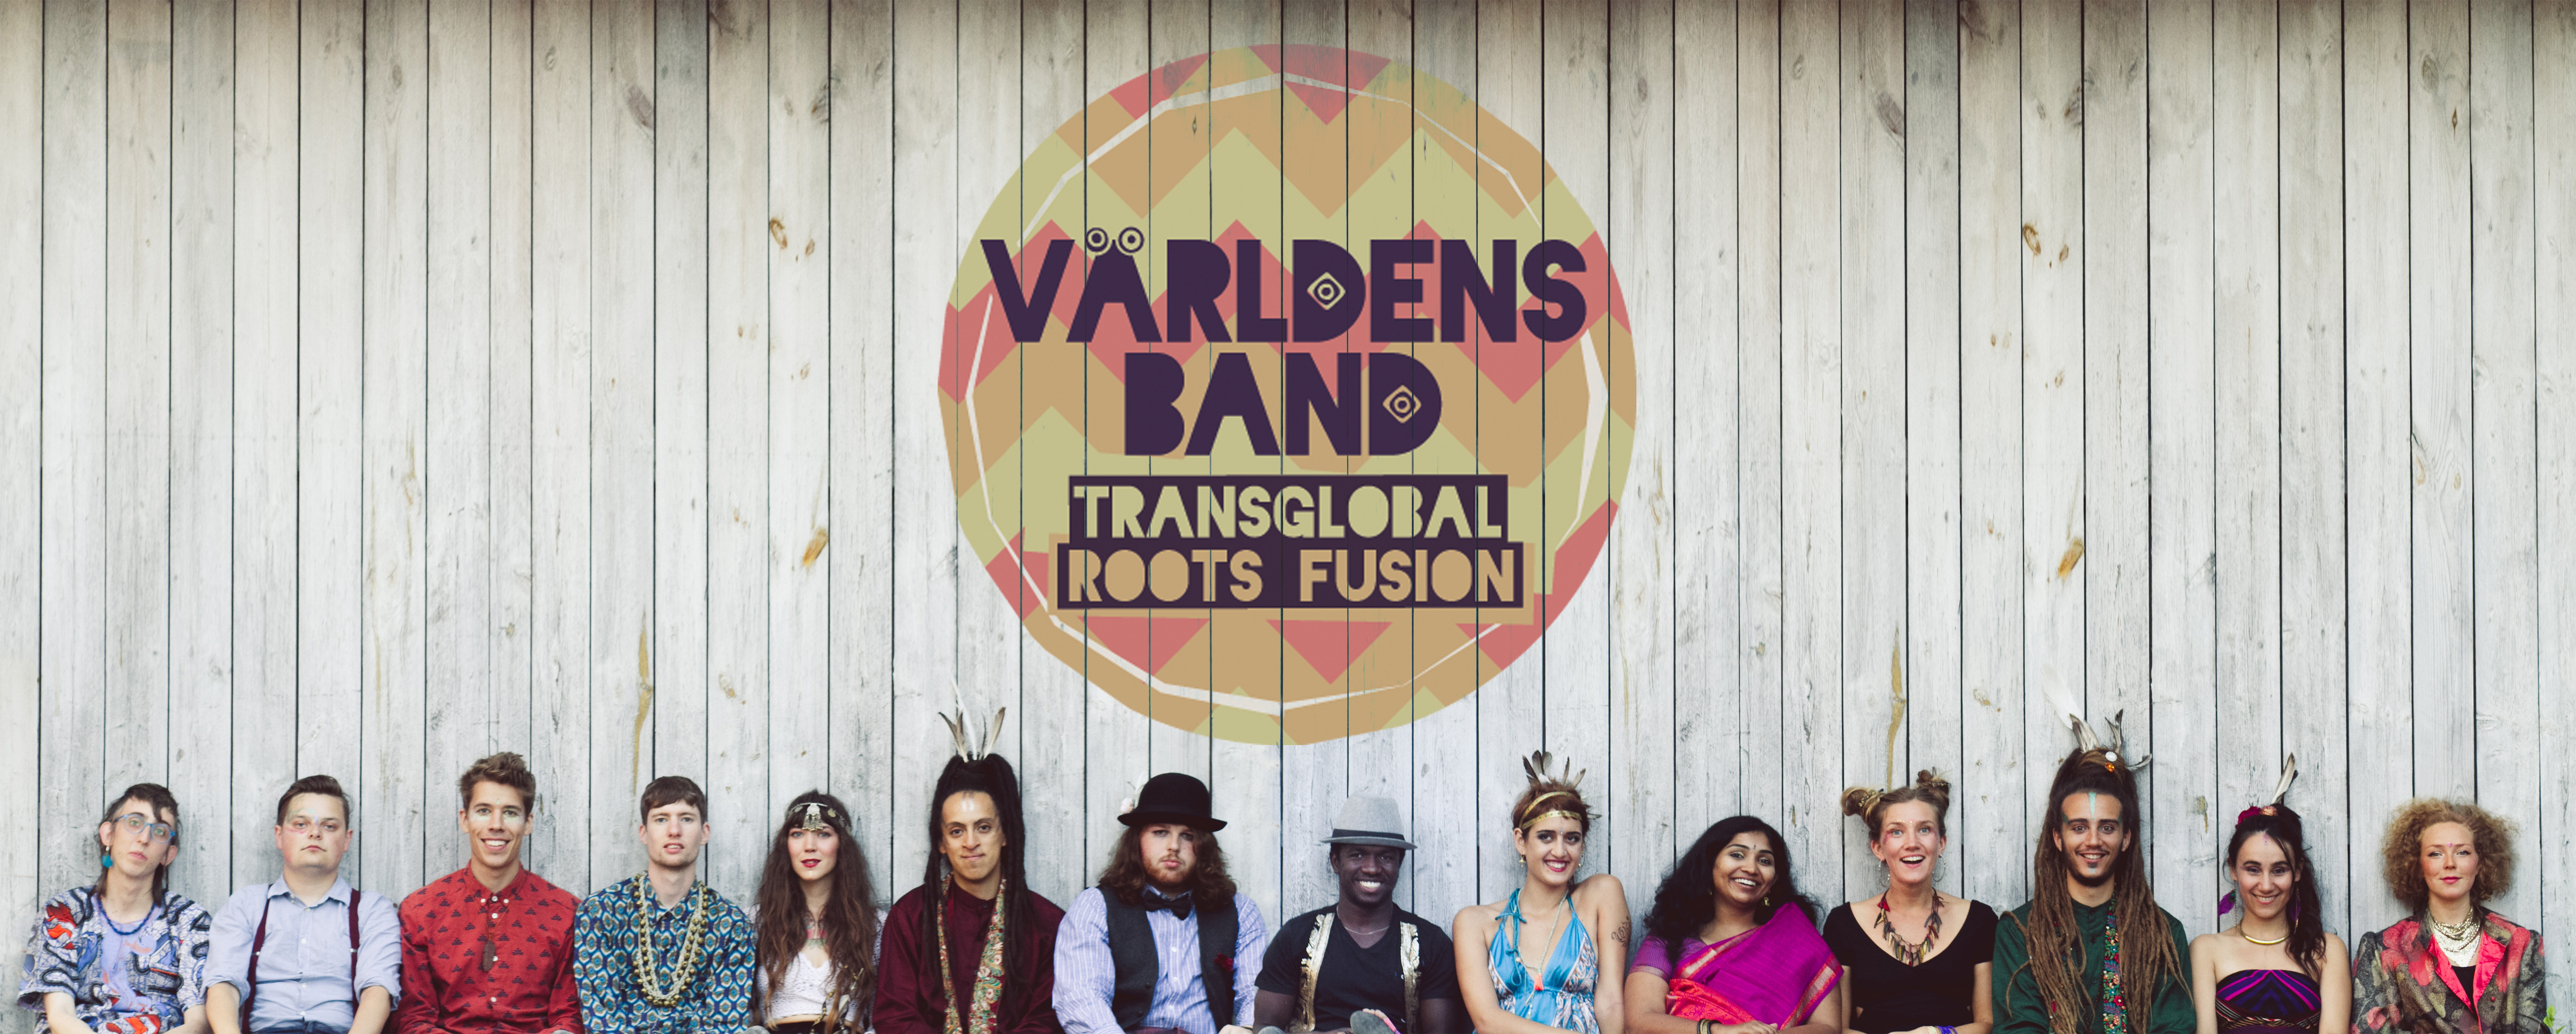 Varldens Band logo and members